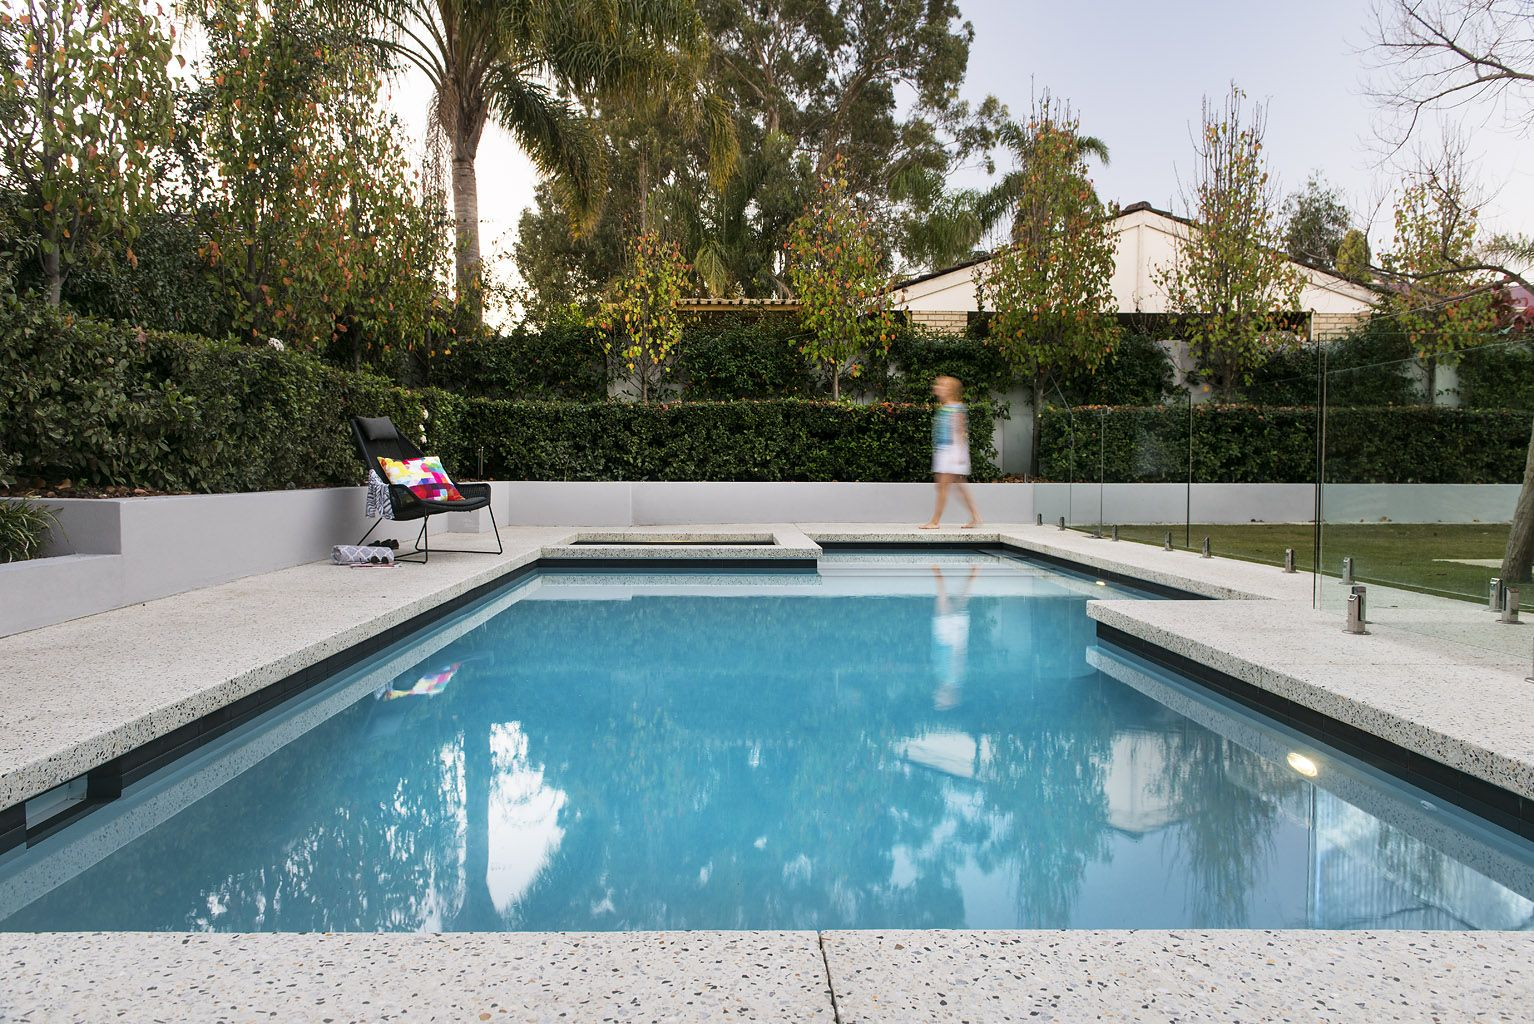 Decorative concrete pool surrounds options. Add value with